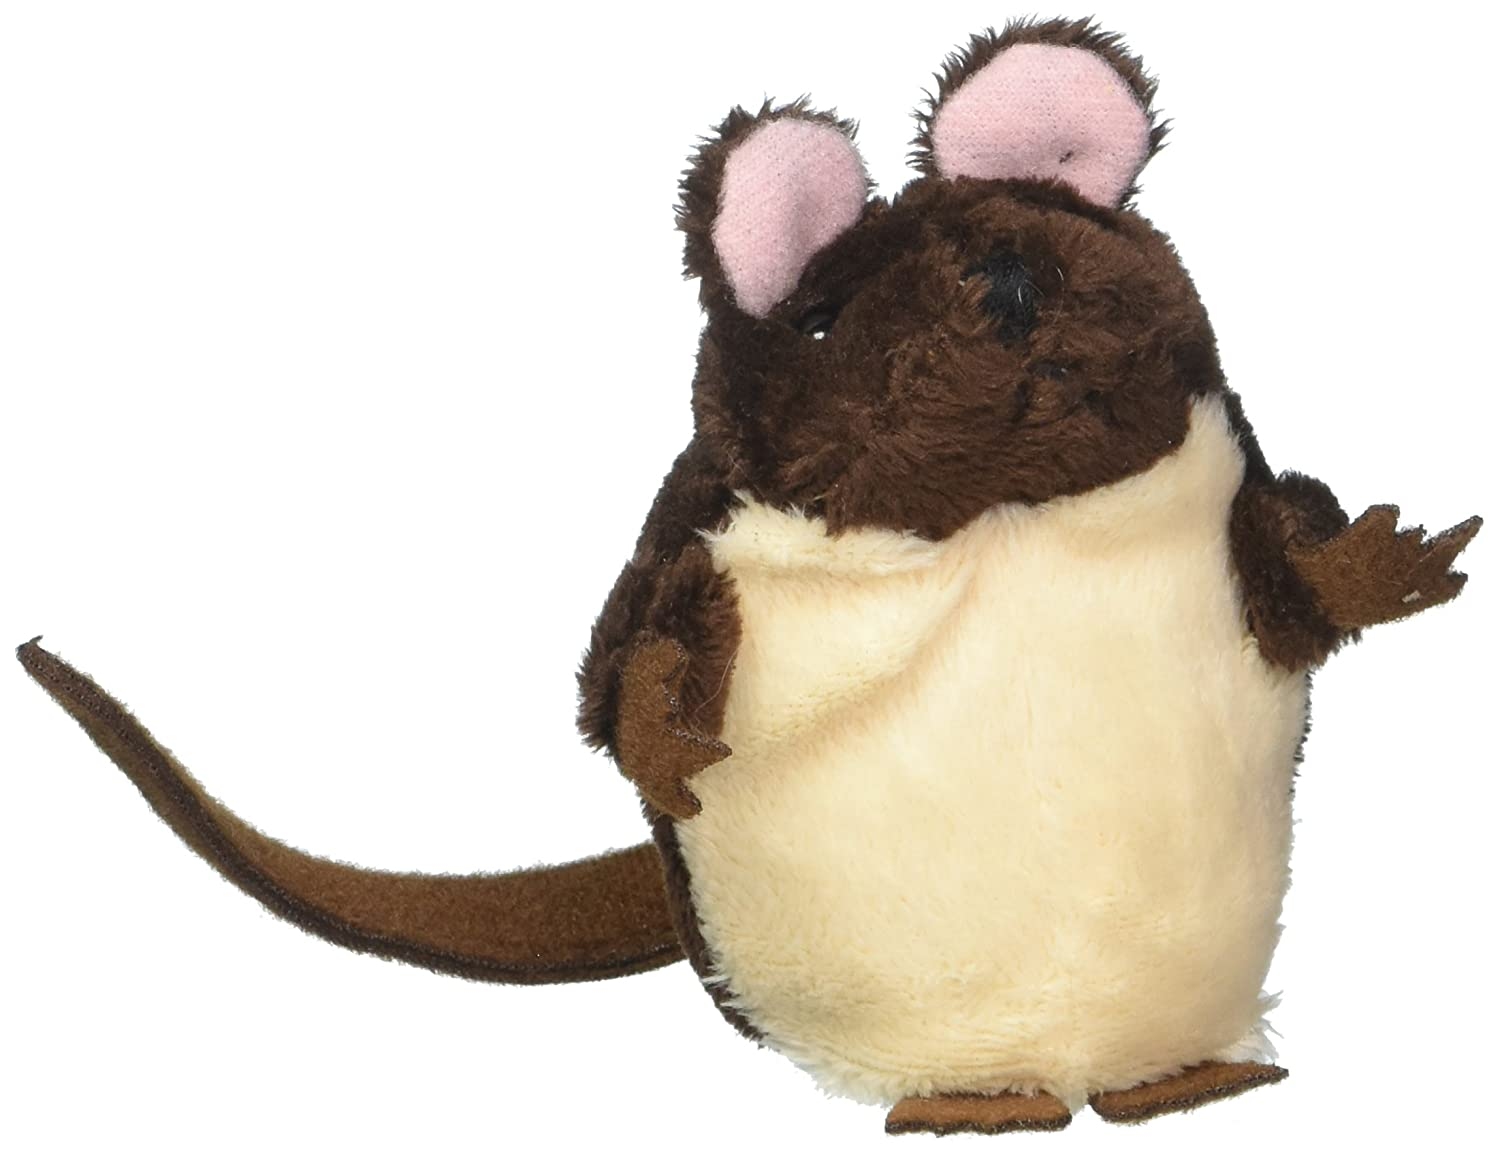 The Puppet Company - Finger Puppets - Brown Mouse PC020235